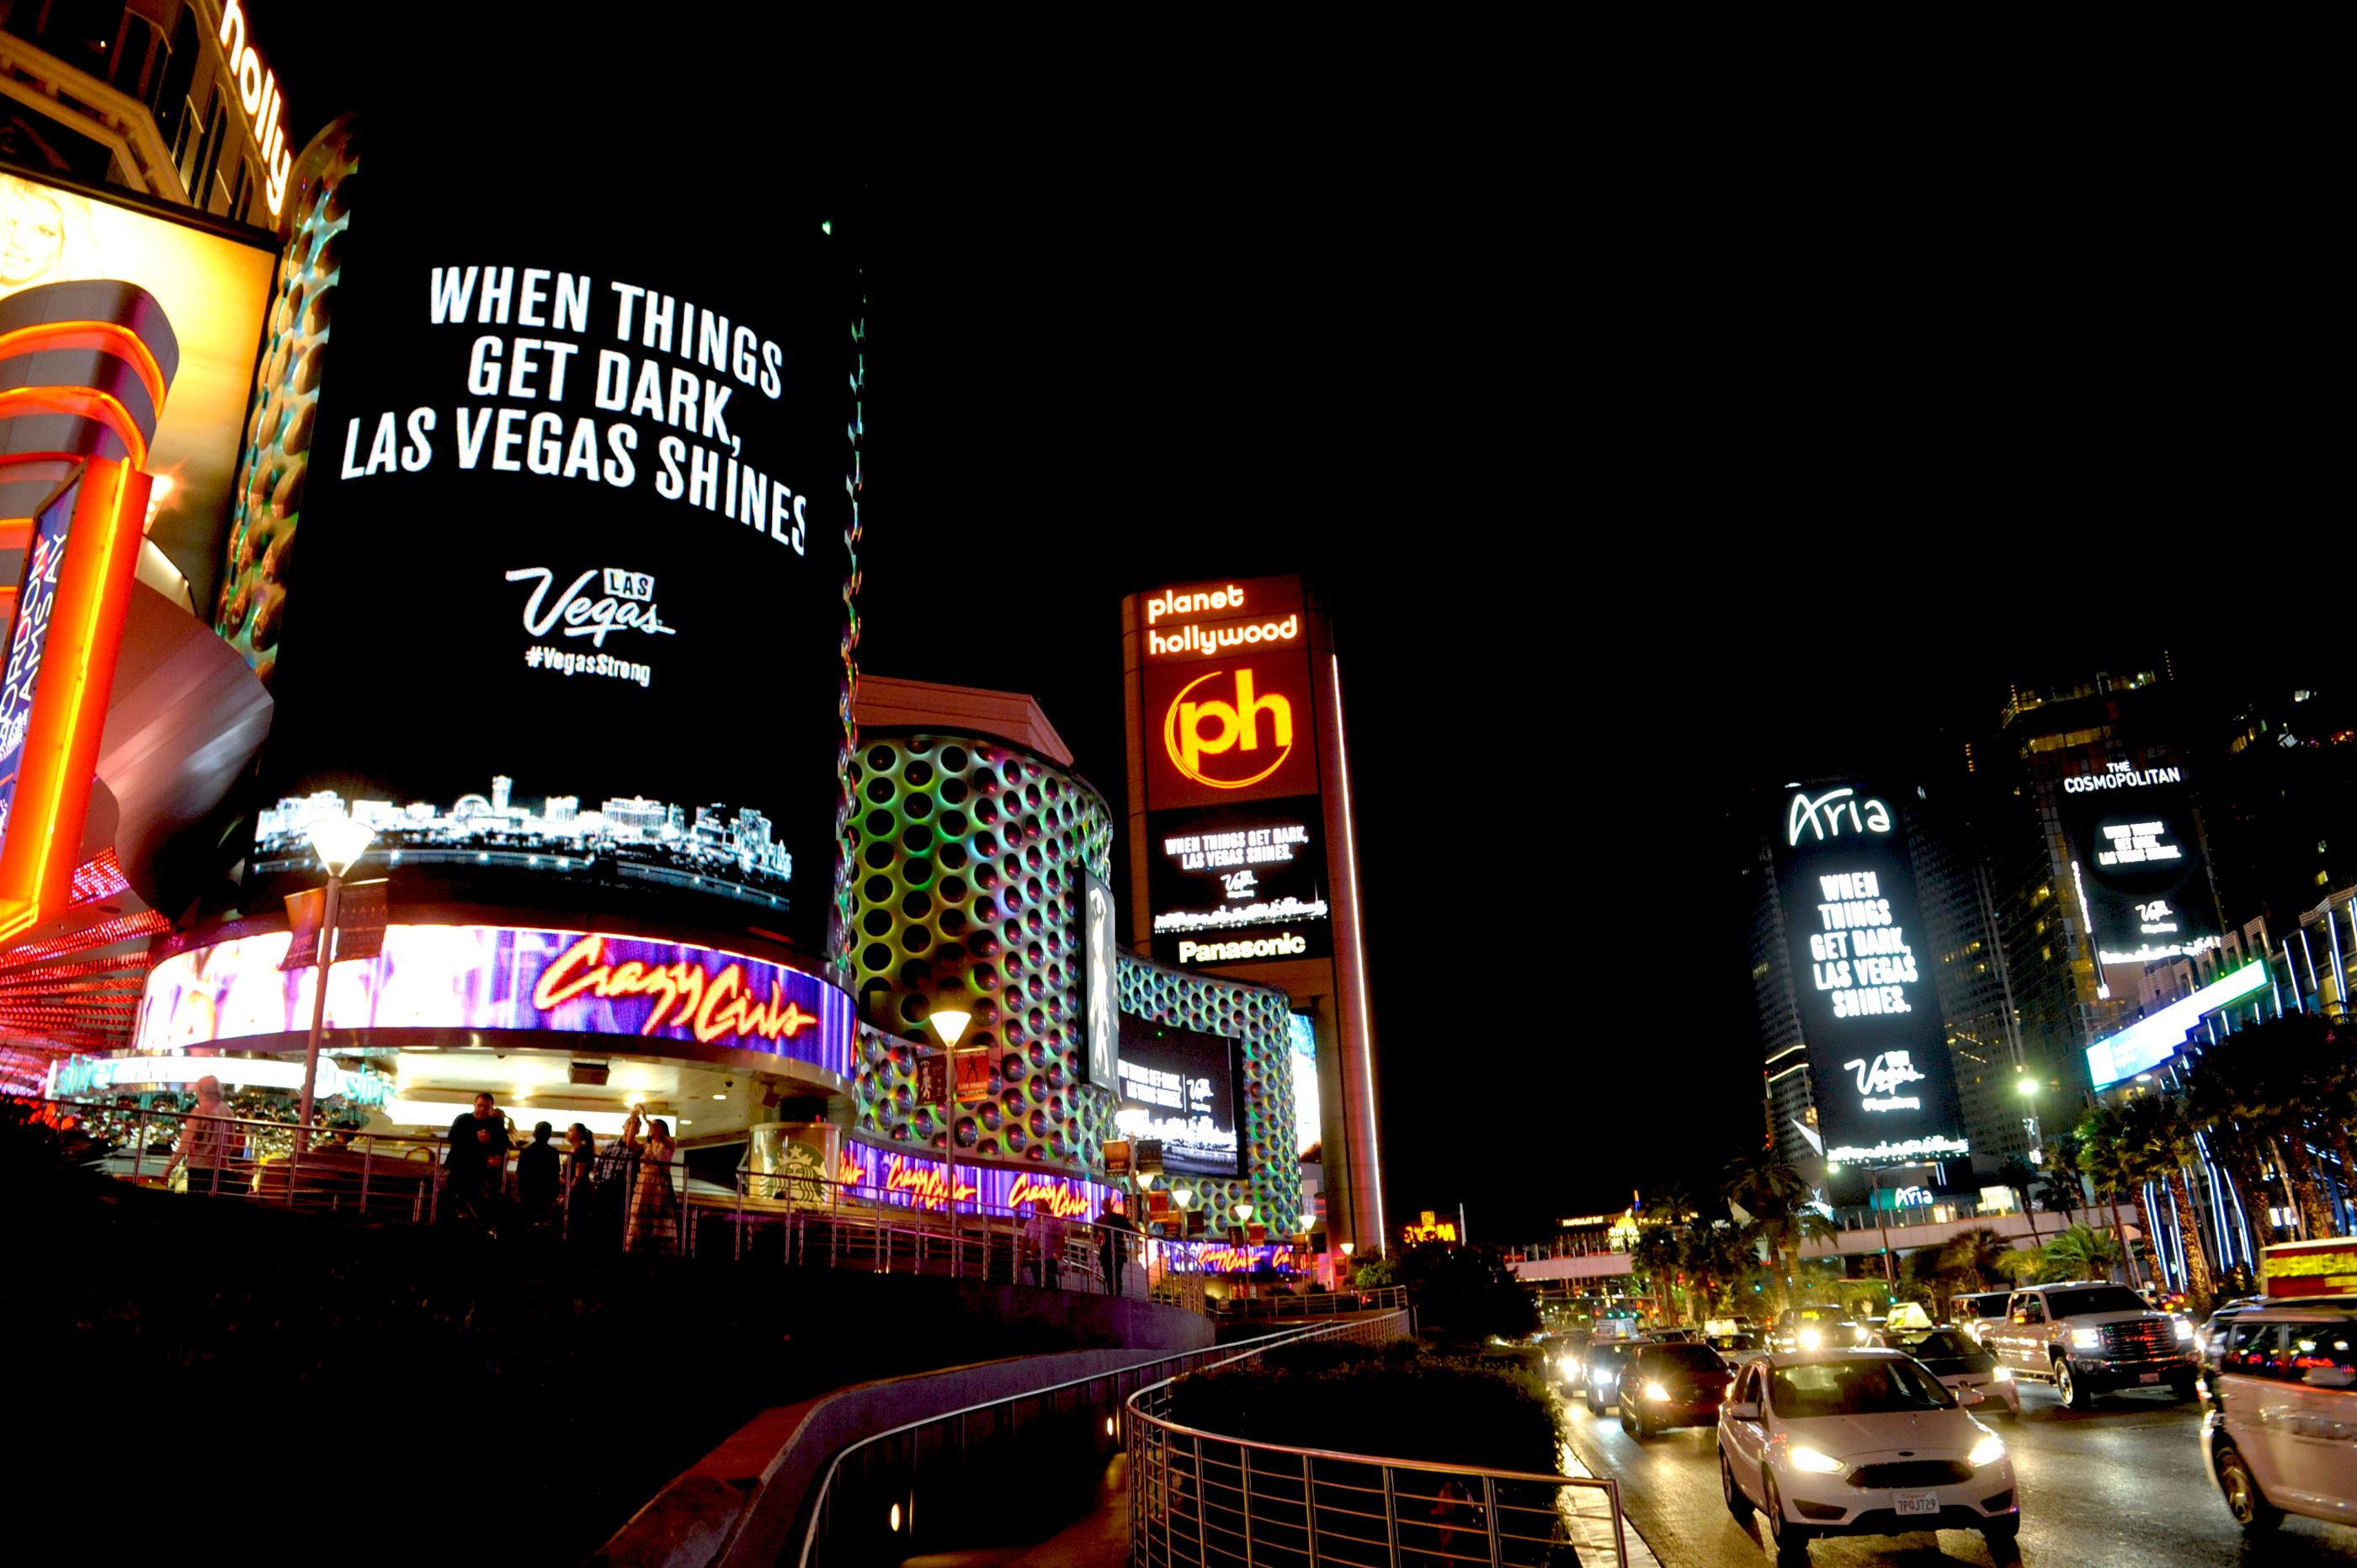 This evening, the Las Vegas community dimmed the lights of its digital marquees for 11 minutes to honor the victims and heroes of last week?s tragic event. From 10:05 to 10:16 p.m., marquees along the Strip and across the Las Vegas Valley remained dim and the city collectively respected those affected with a moment of darkness.Following the tribute, digital marquees throughout the city displayed a message of resilience:  When Things Get Dark, Las Vegas Shines. This message will remain in rotation until Monday morning. Sunday, October 8, 2017. CREDIT: Glenn Pinkerton/Las Vegas News Bureau